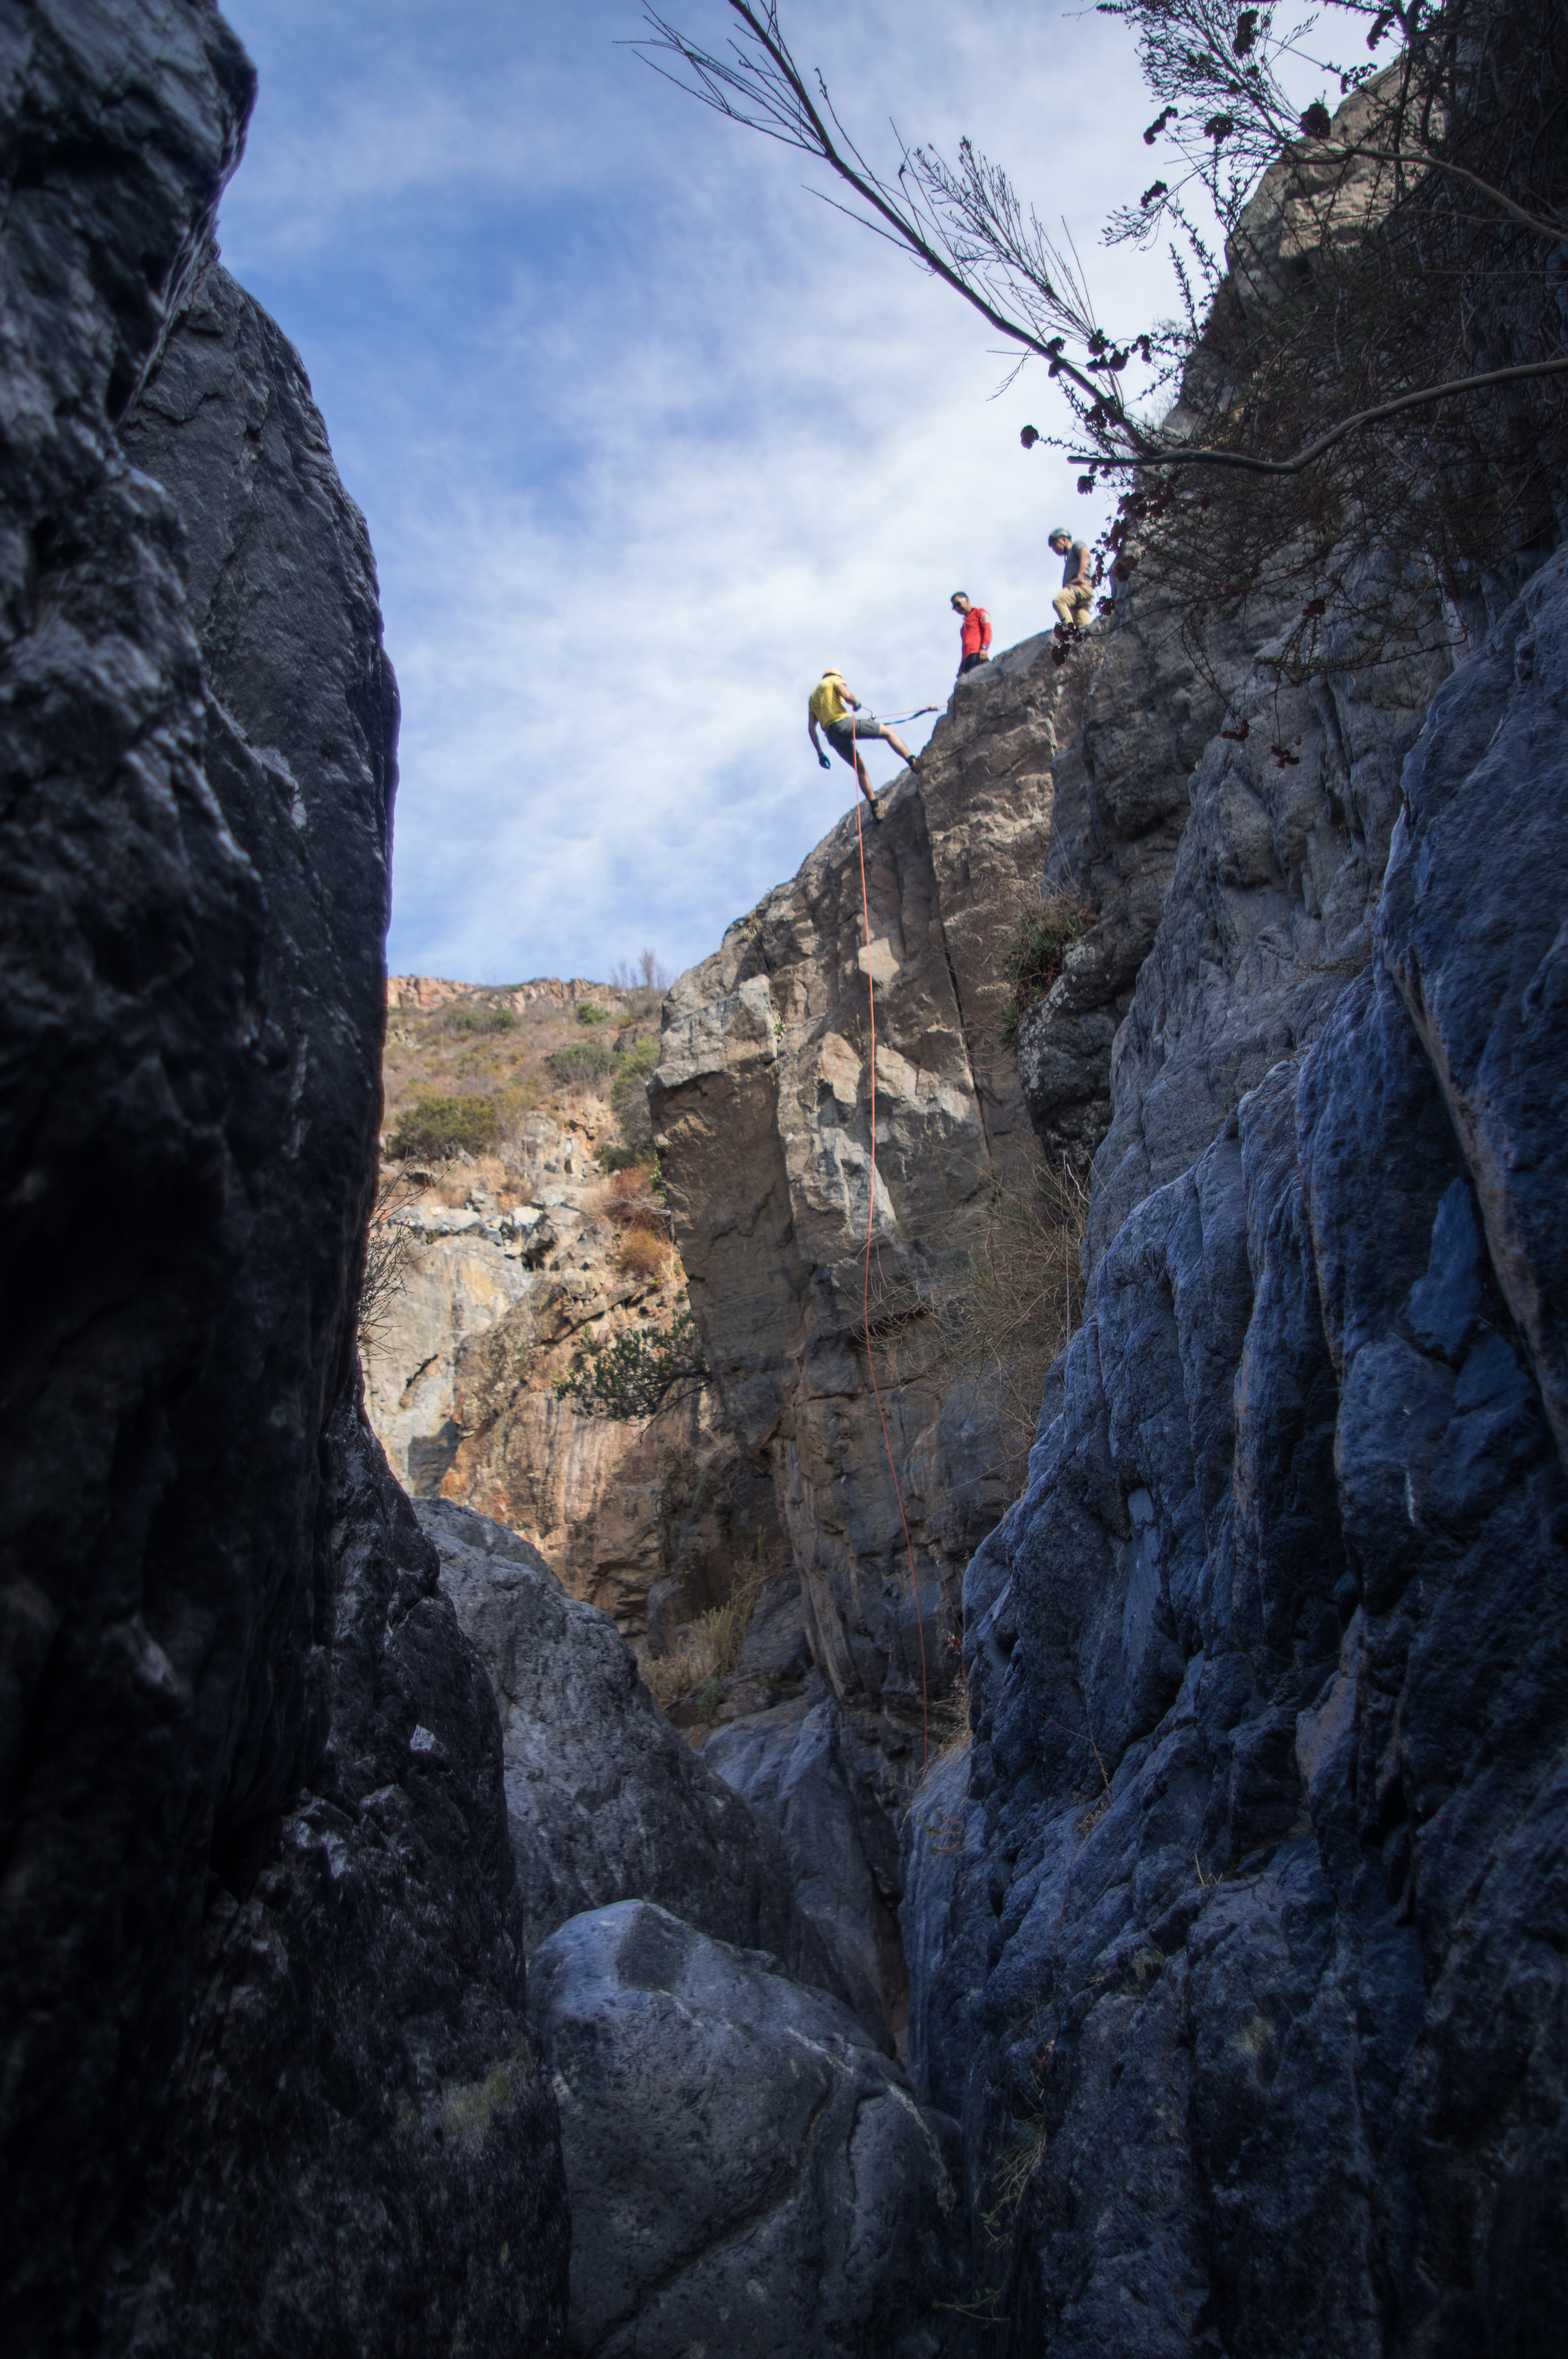 Sebastian [yellow] comfortably begins his second rappel. The nervous excitement that previously hung in the air quickly dissipated.